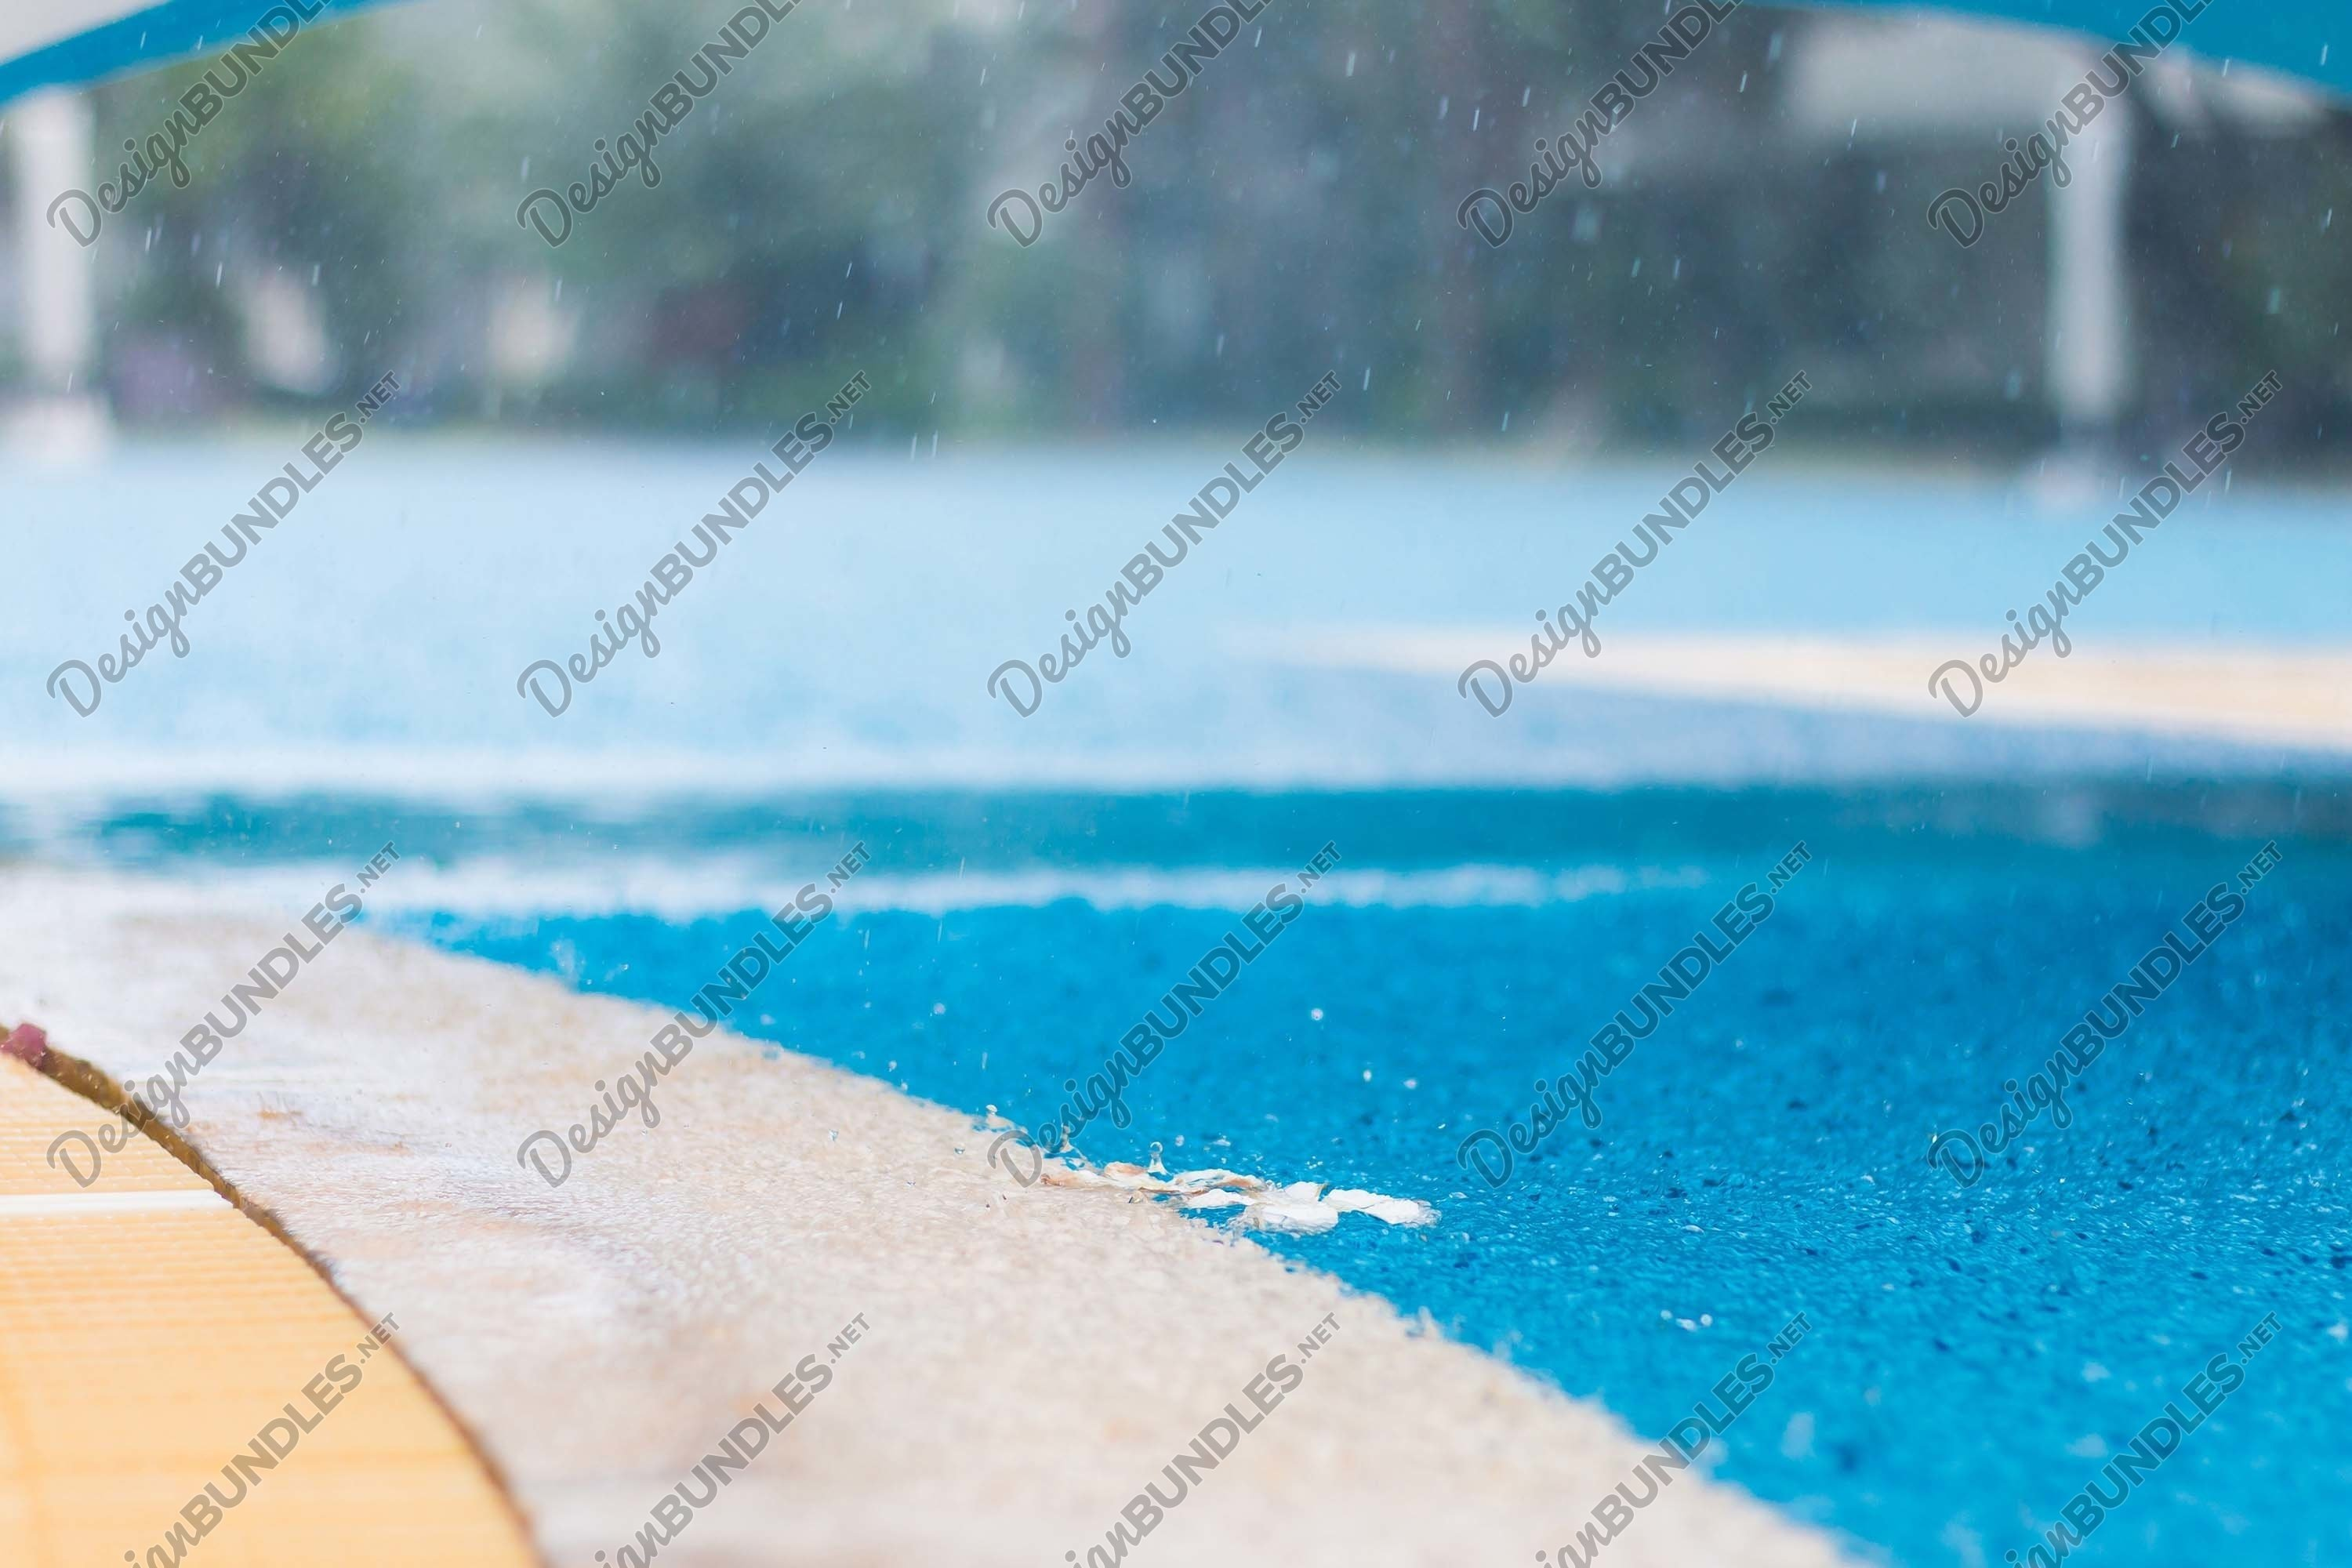 Stock Photo - Rain on the basketball court example image 1